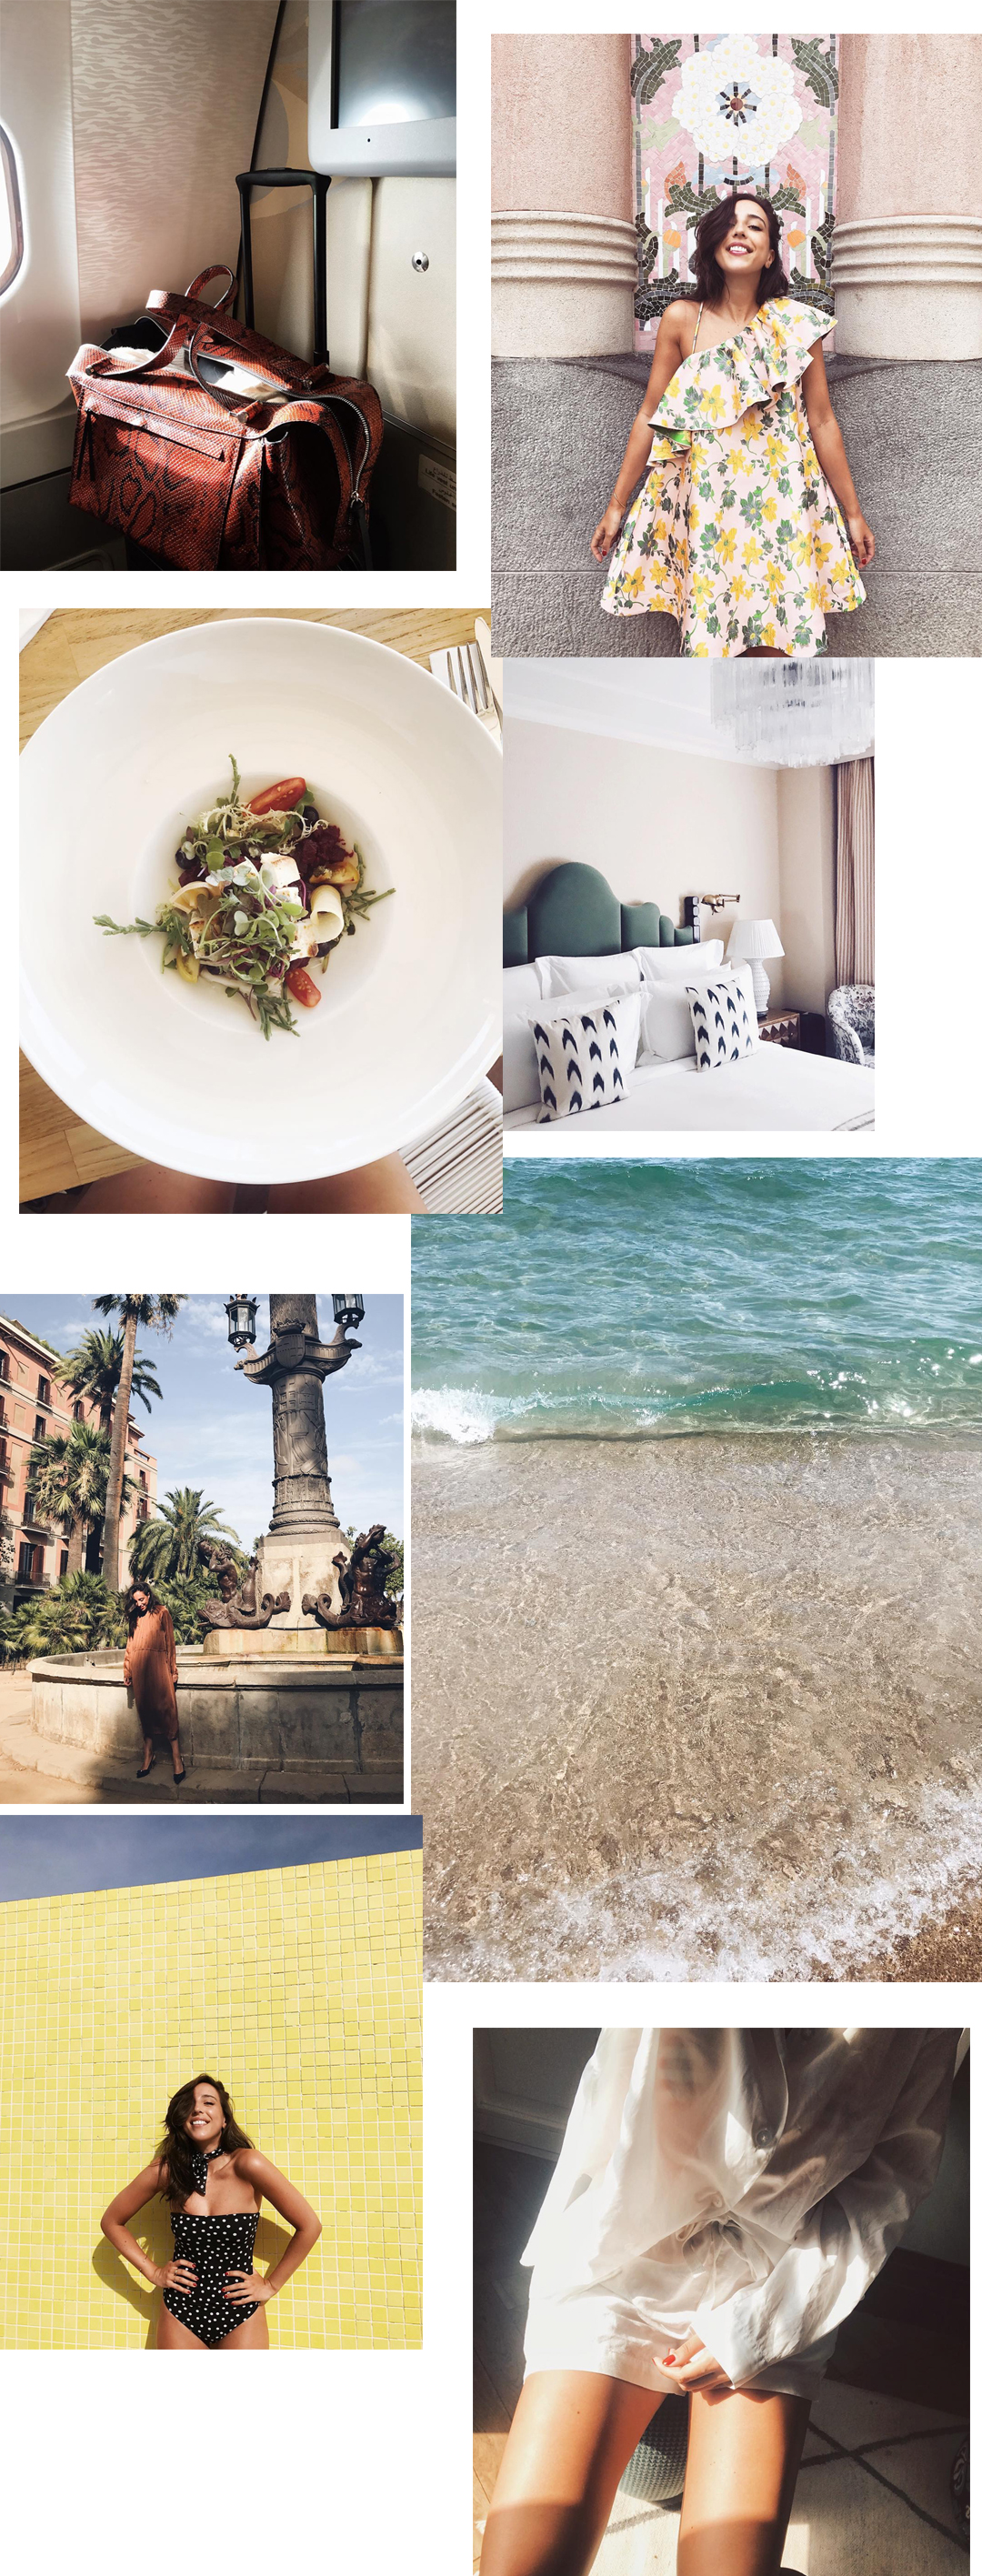 sania claus demina 2017 year in review_16_barcelona july mom mamma beach bogatell soho house